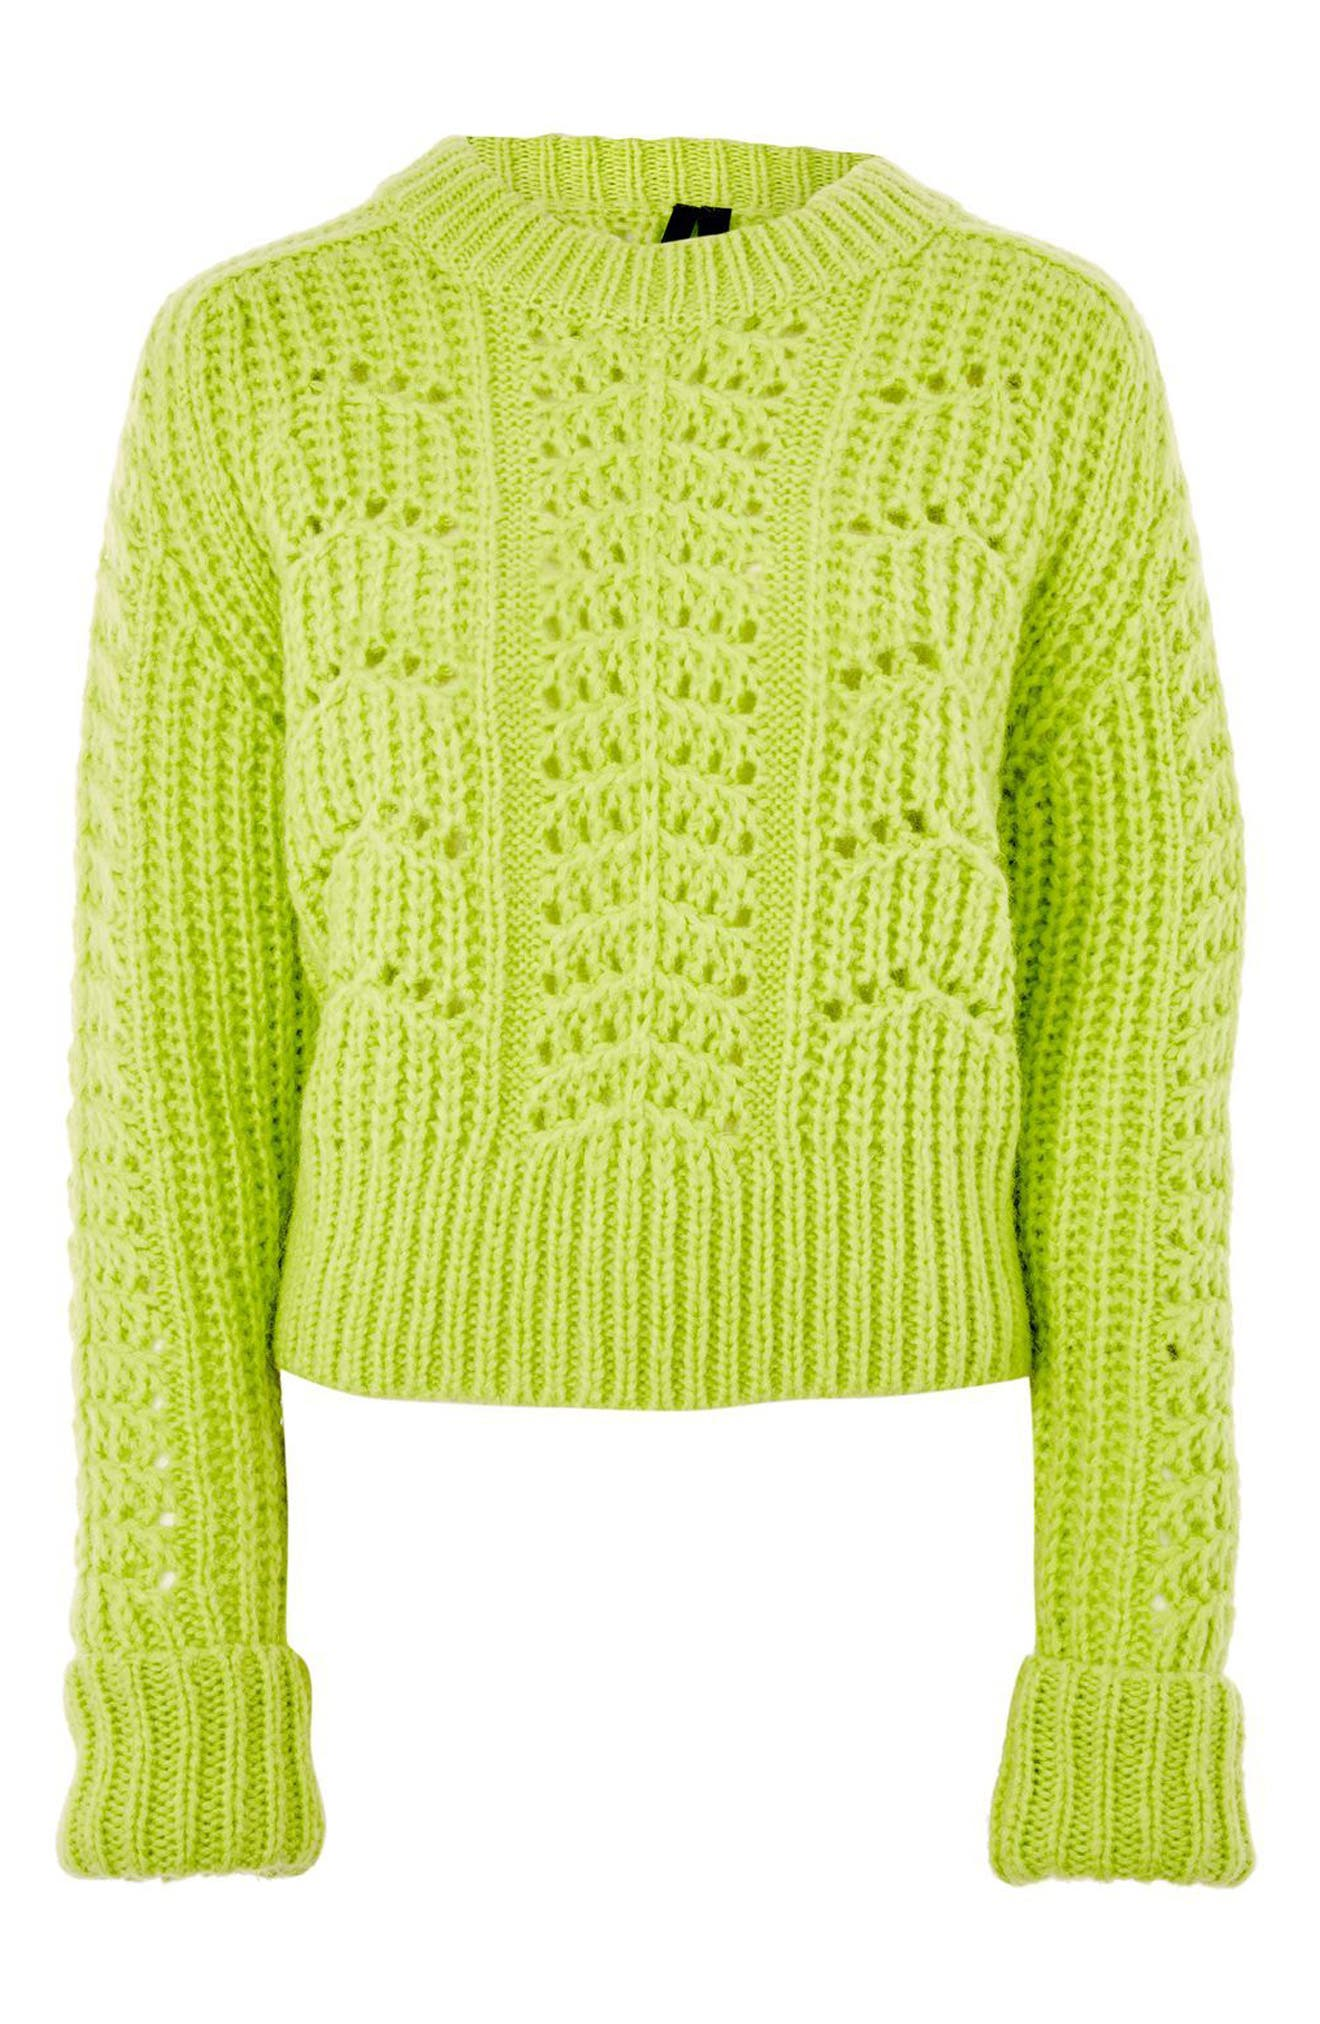 Topshop Boutique Cable Knit Sweater